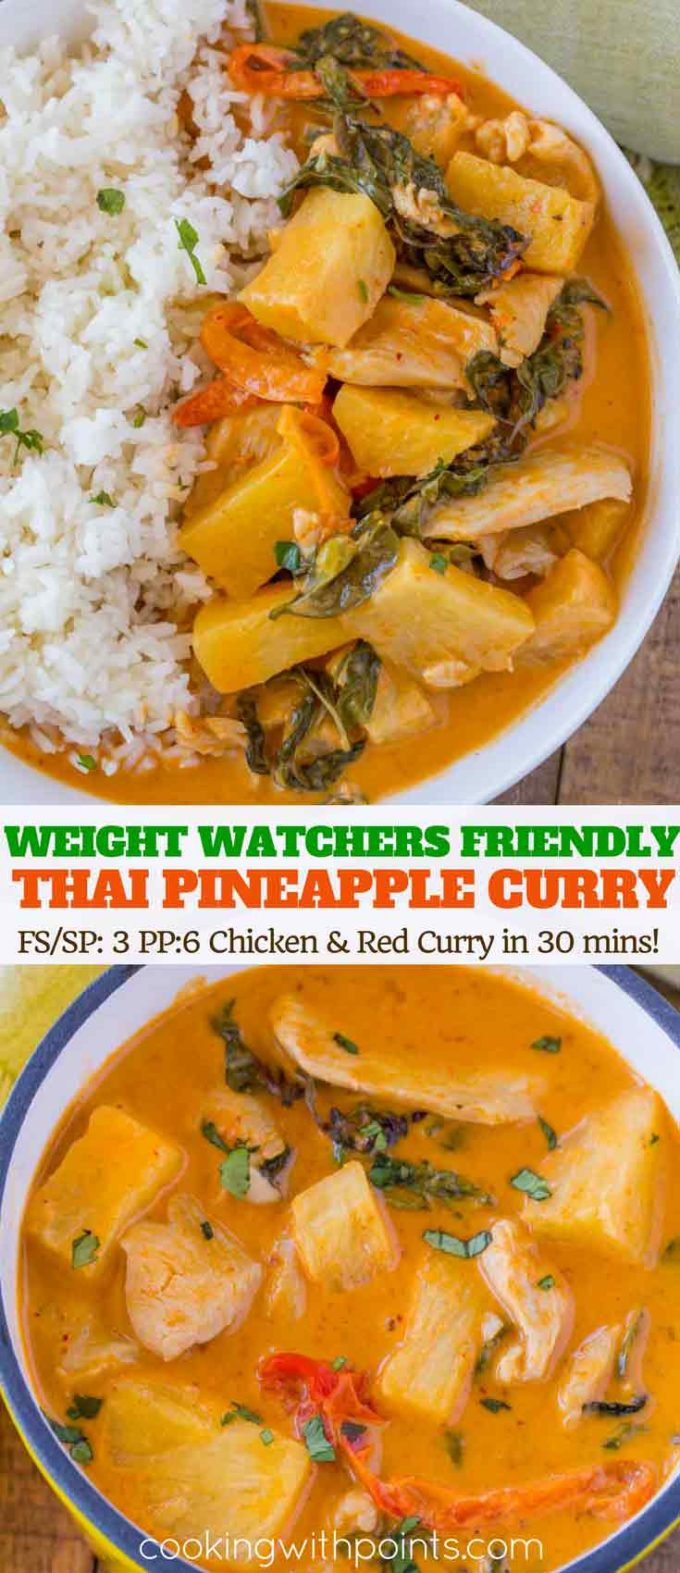 Thai Pineapple Curry with Chicken